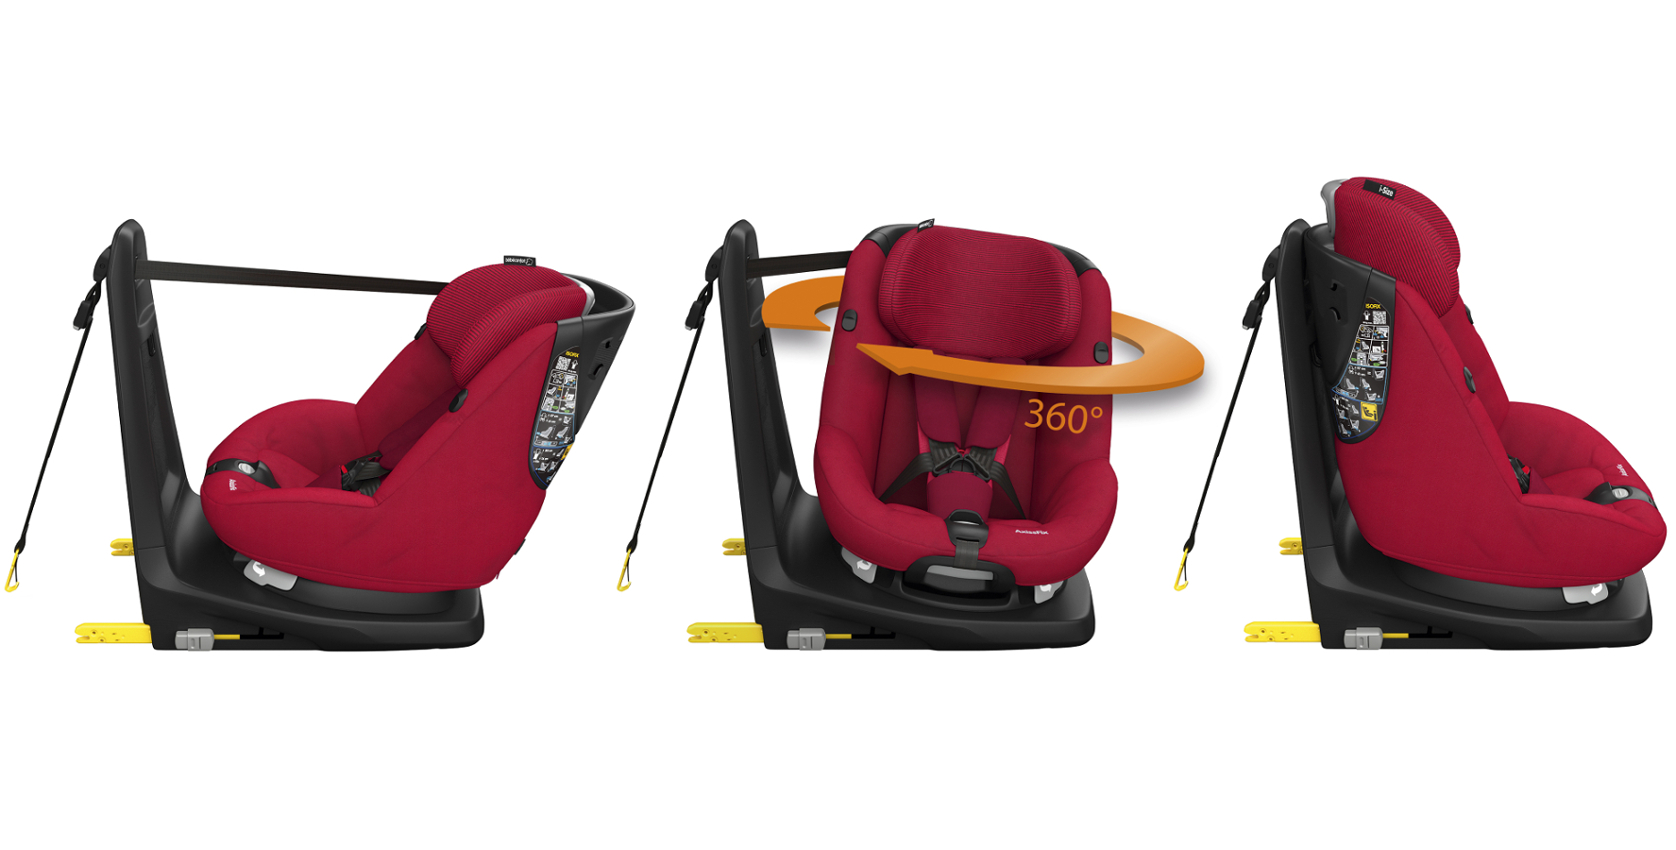 bebeconfort carseat toddlercarseat axissfix 2015 red robinred multiview side